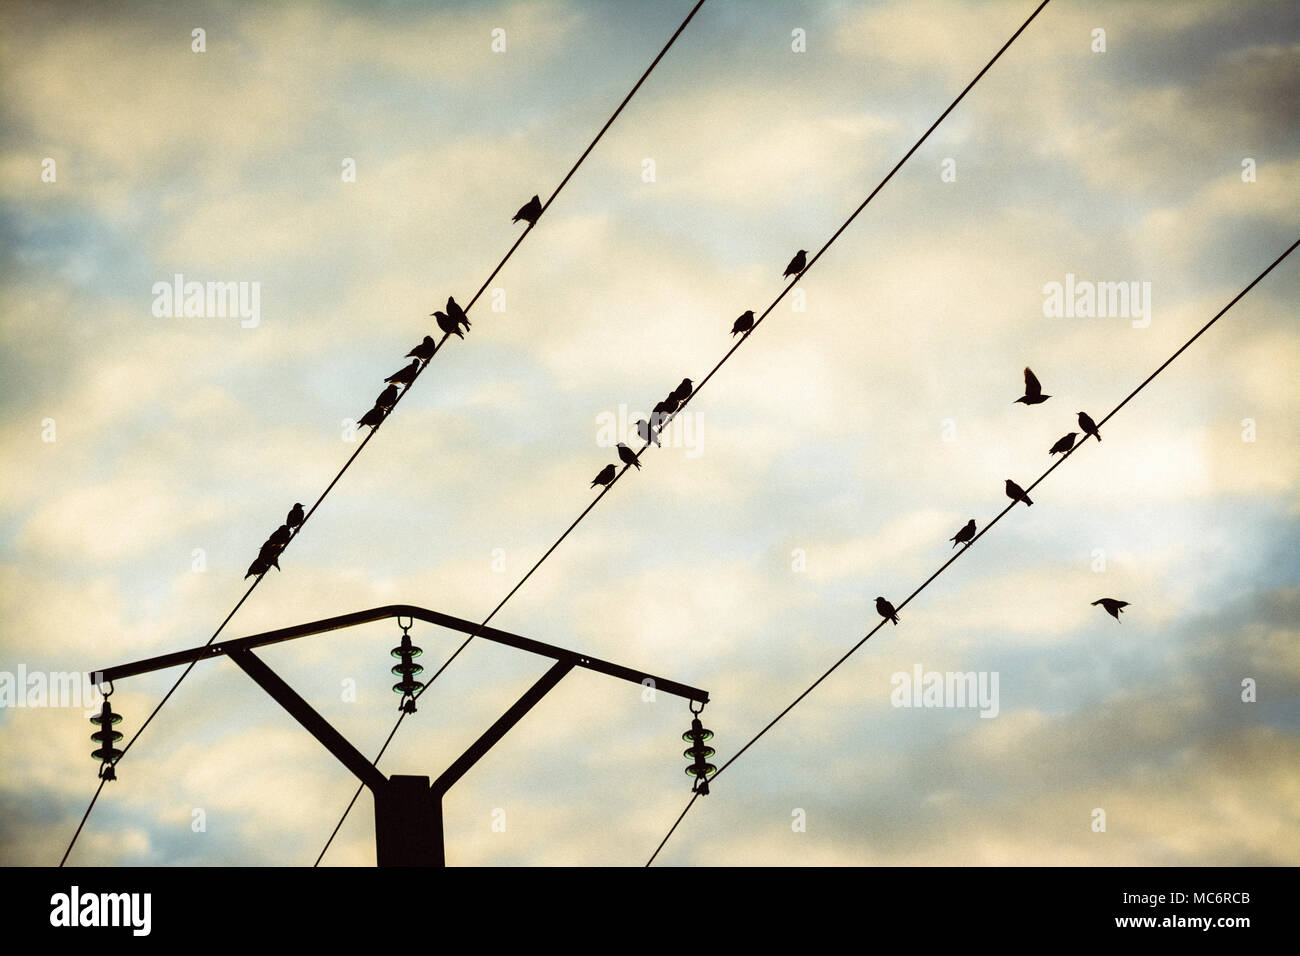 Perched Telephone Wire Stock Photos & Perched Telephone Wire Stock ...